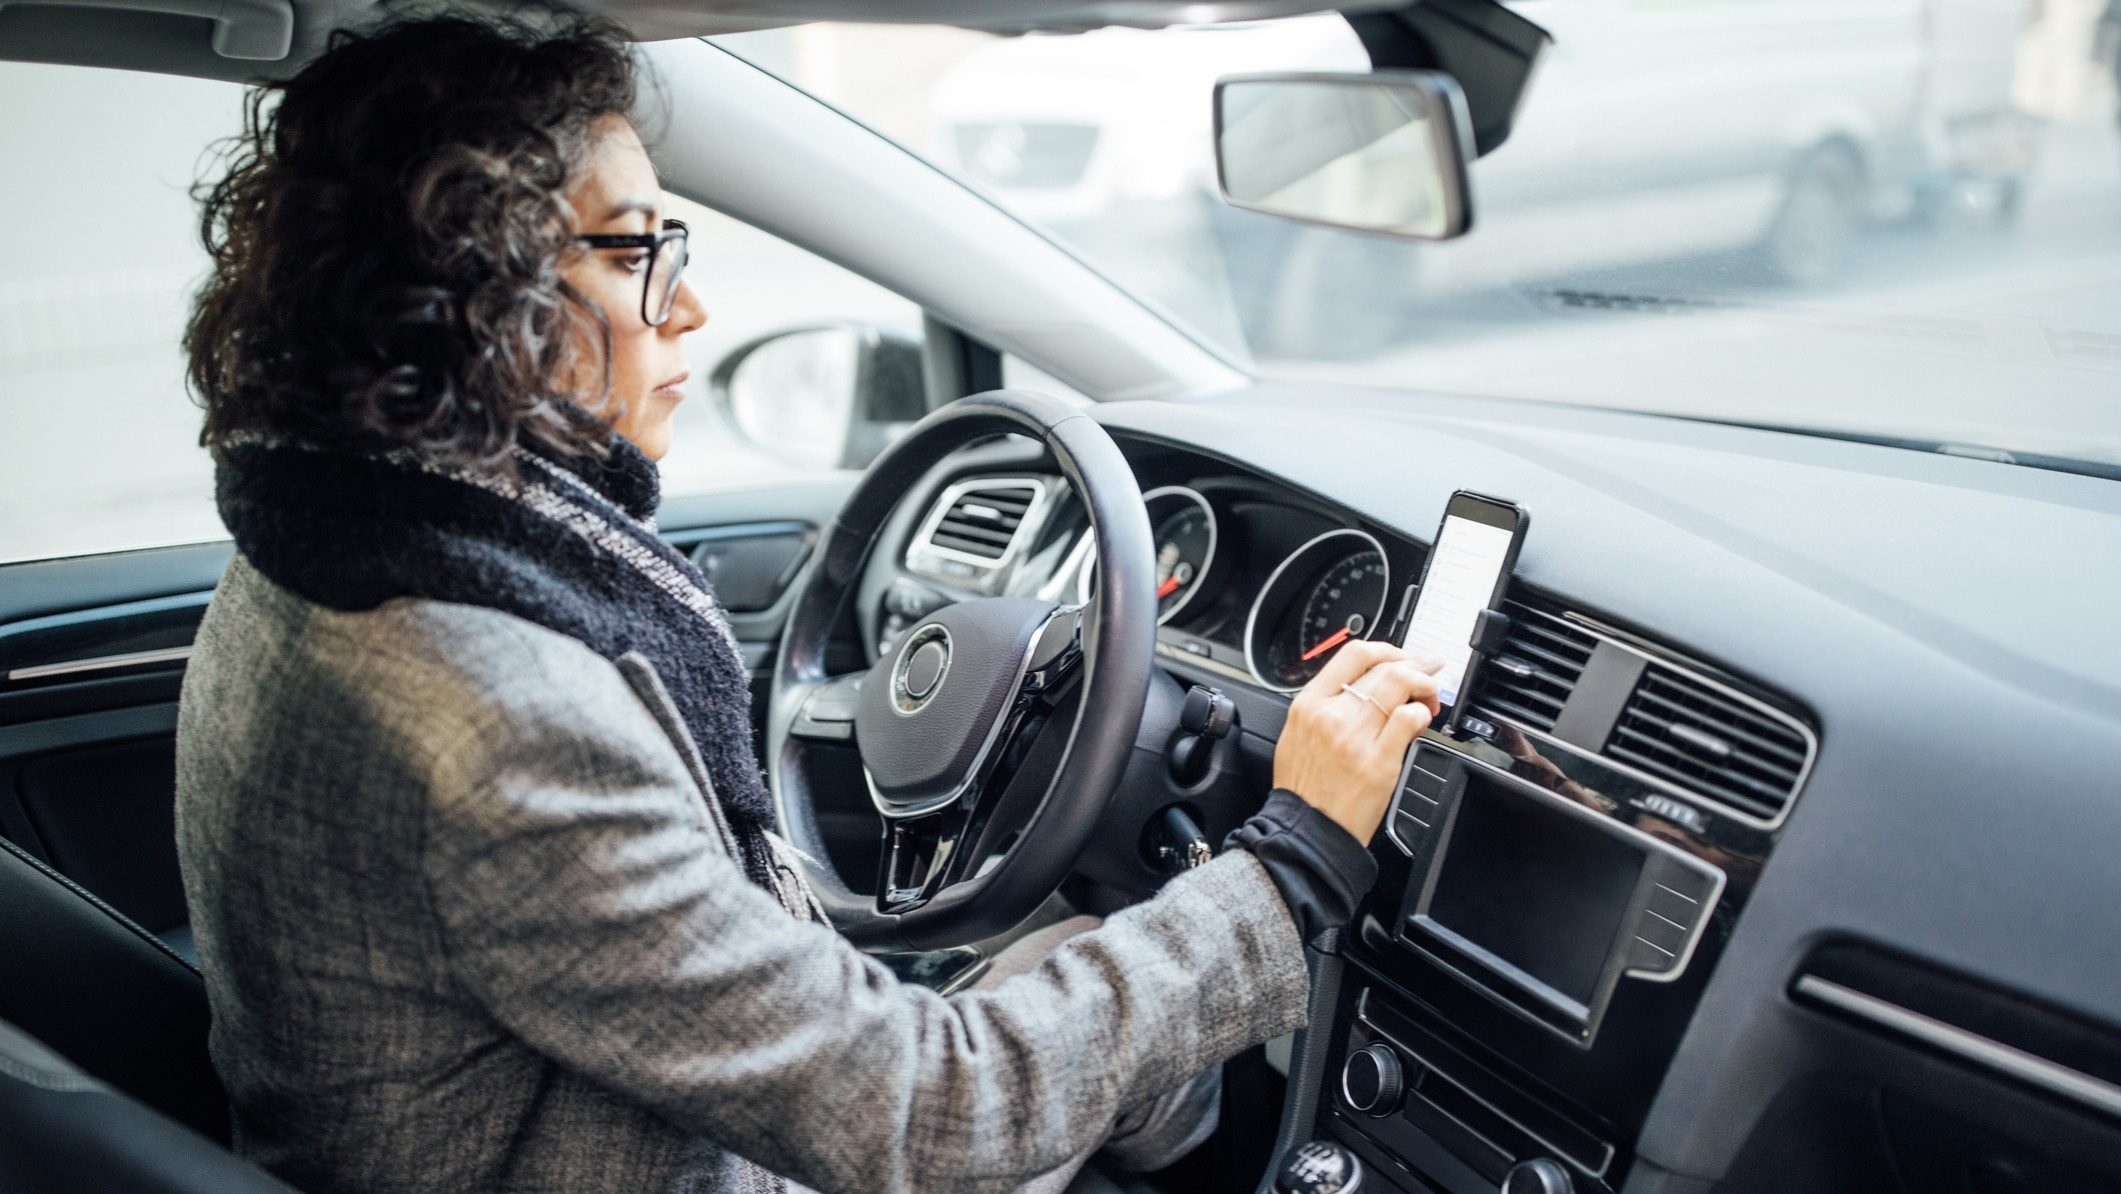 Woman sitting in car in drivers seat, using phone and insurtech devices.